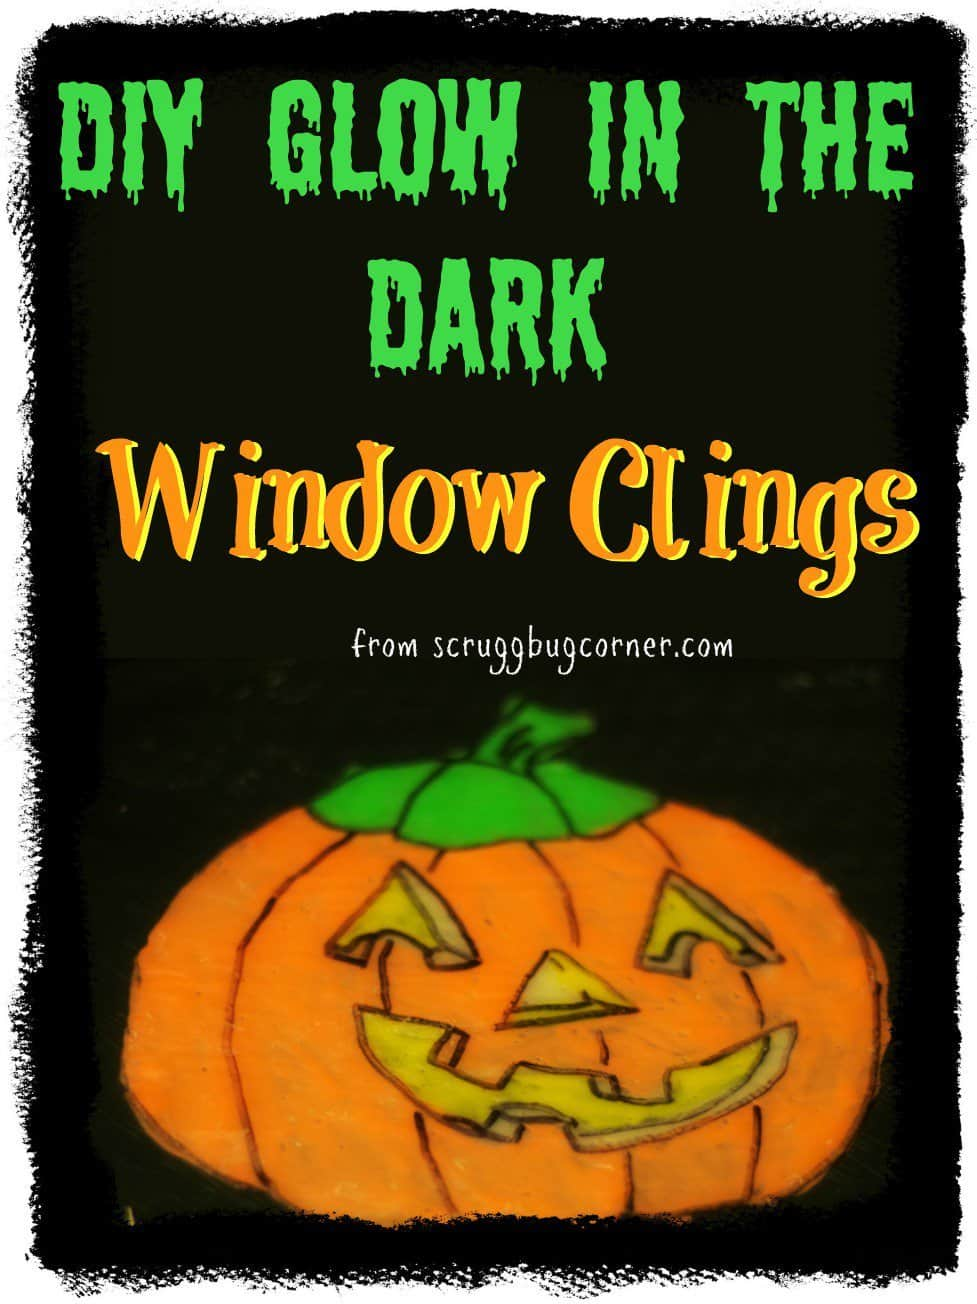 DIY Glow in the Dark Window Clings. DIY Tutorial from Scruggbug Corner